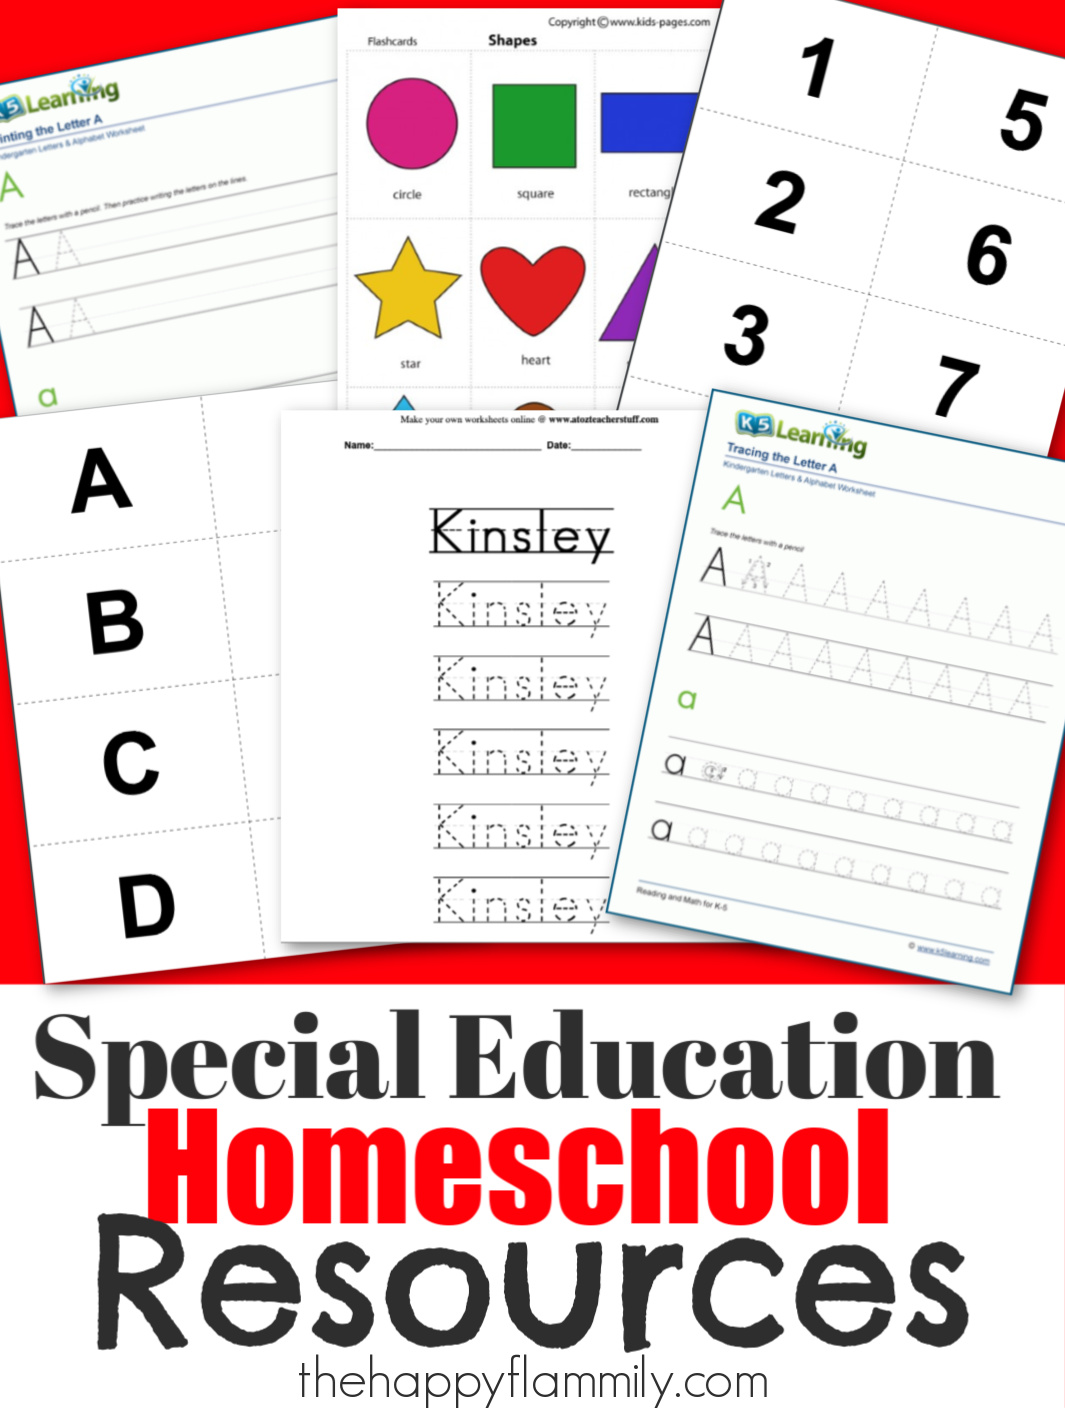 Special needs homeschool ideas. Homeschooling a special needs child. Special education homeschool ideas. Curriculum for special needs education. Free curriculum for special Neds students. Free online school for special needs students. Homeschool special needs California. Homeschool curriculum for learning disabilities. Special needs curriculum ideas. Homeschooling special needs children in Florida. Homeschooling a special needs child in NY. #homeschool #specialneeds #specialeducation #homeschool #learning #flashcards #printables